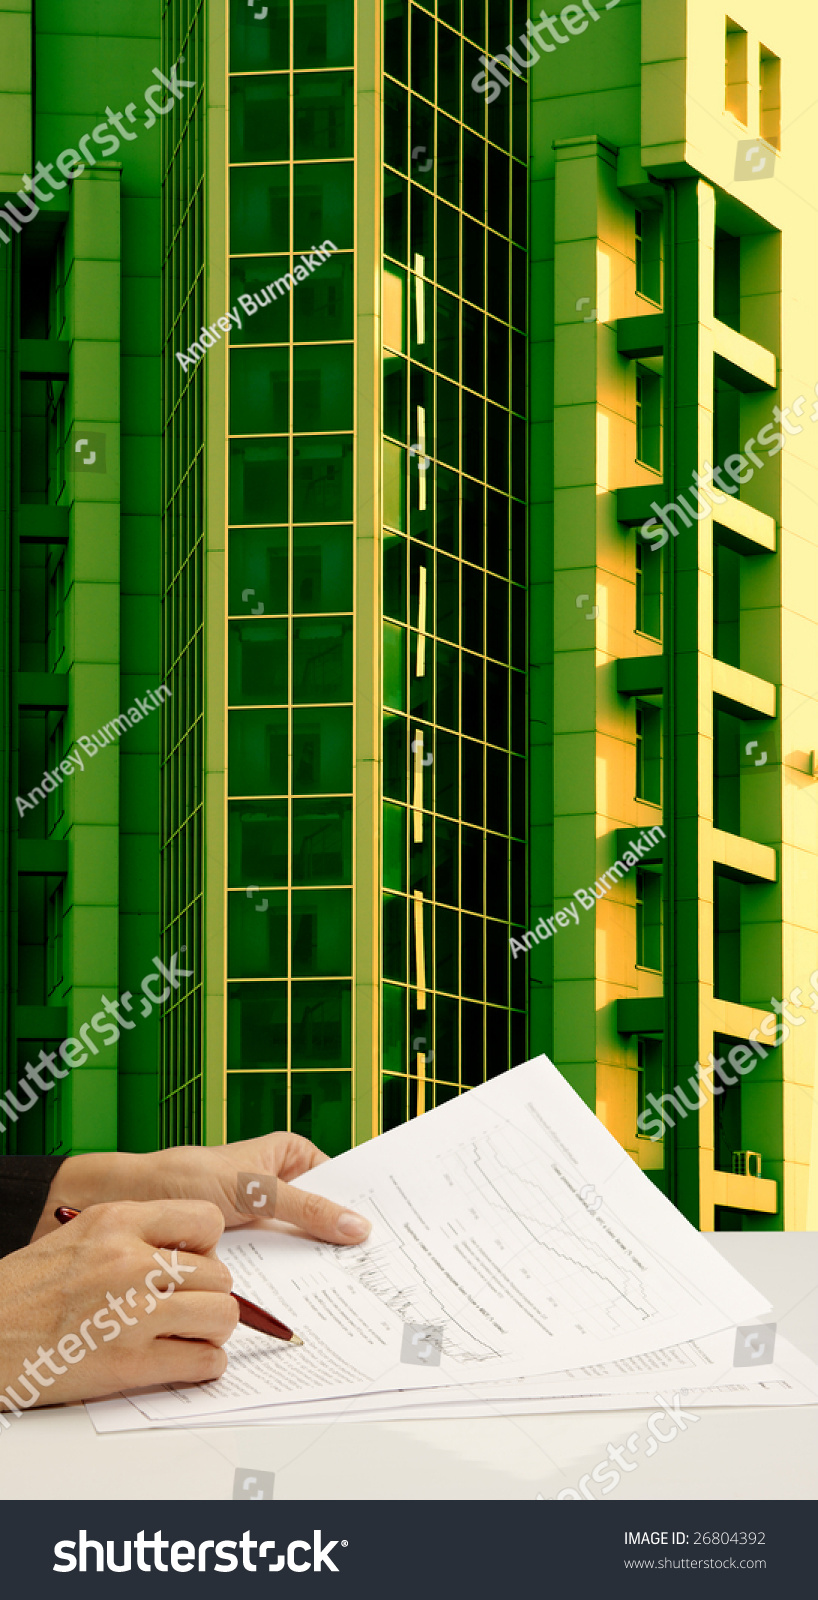 Technology Management Image: Realtor On Background Of Green Building Stock Photo